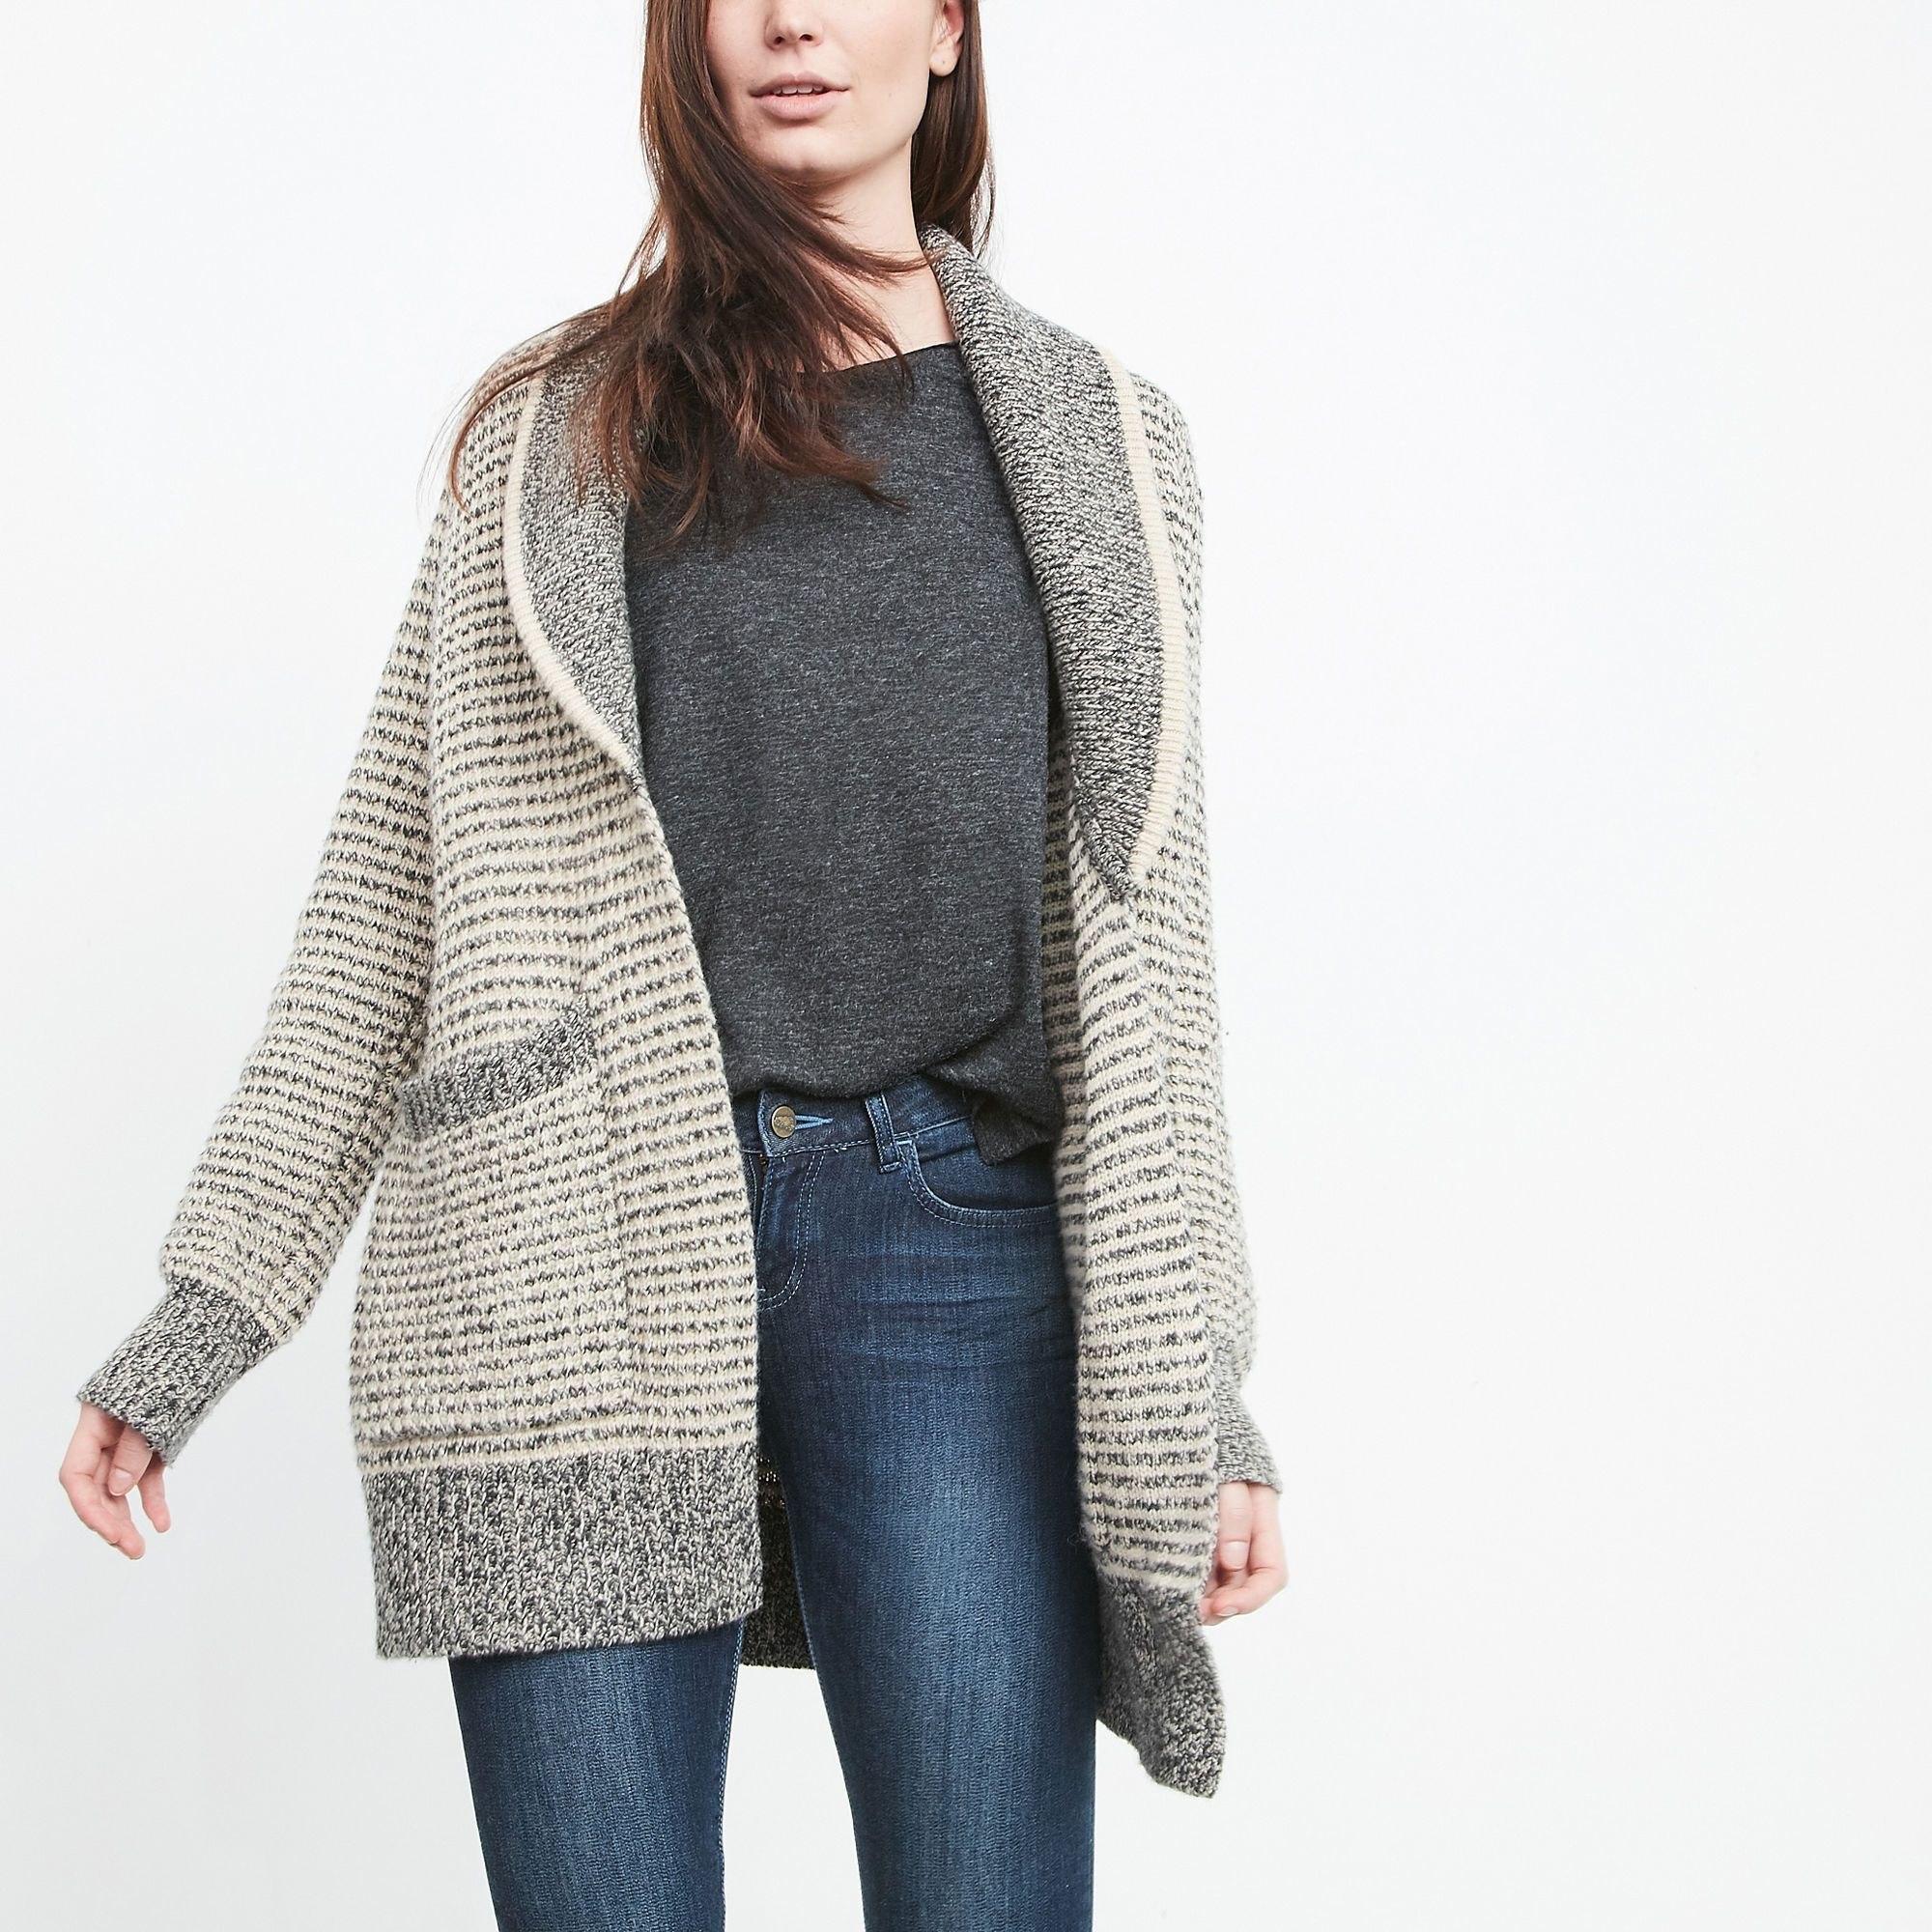 8083dde26 Style Eh? Roots Canada | My Little Secrets | Canadian DIY Blogger and  Fashion Boutique | Roots <3 | Style, Fashion, Roots clothing